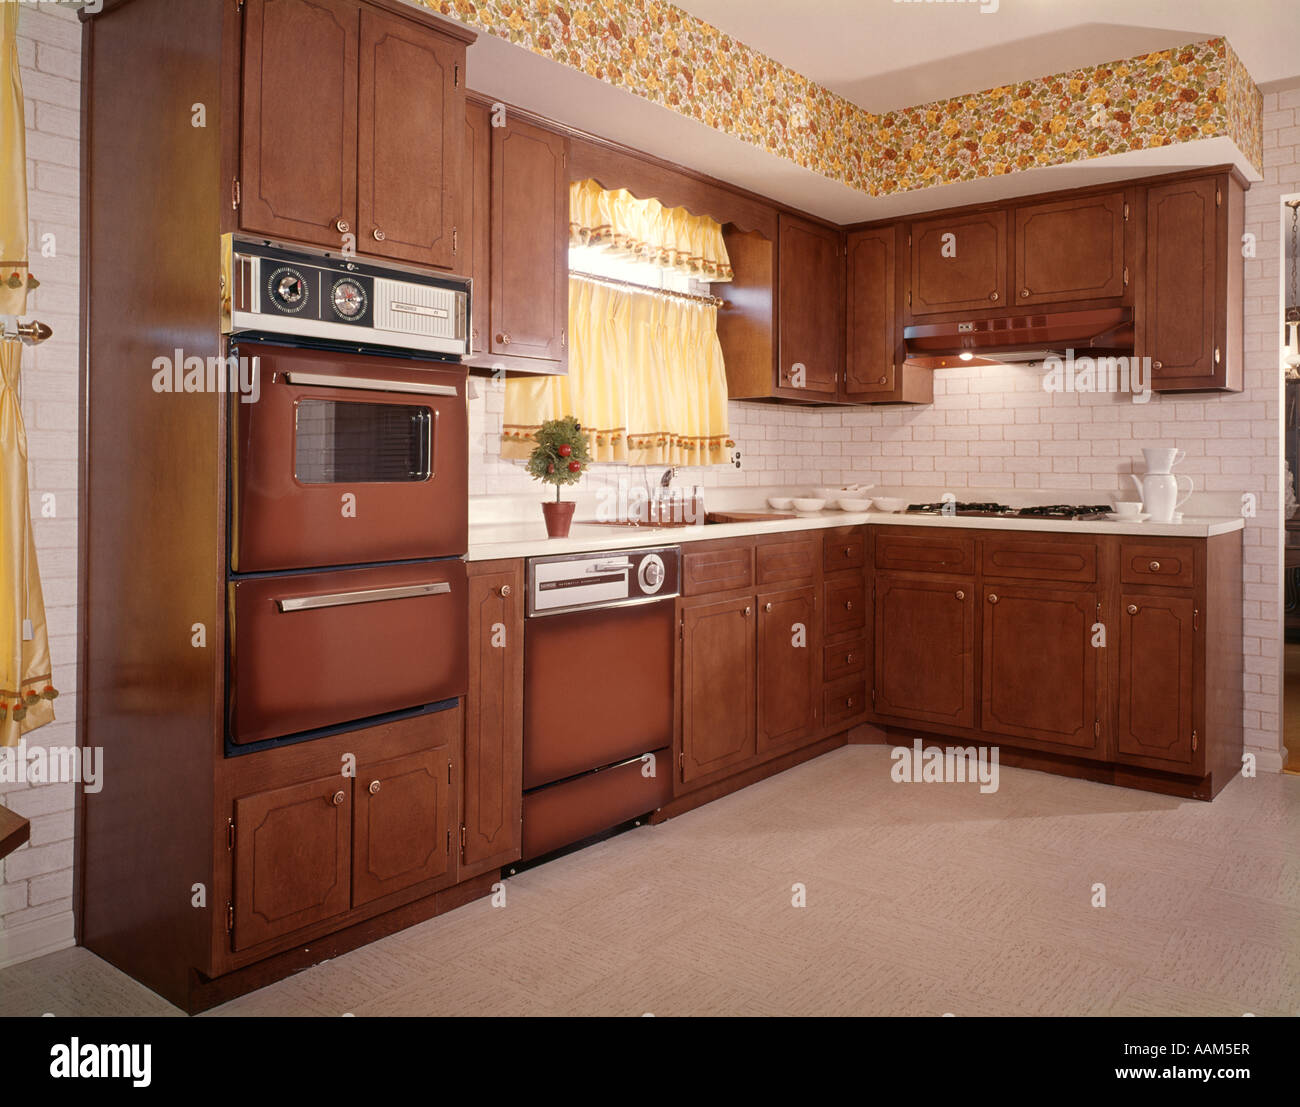 1970s KITCHEN BROWN CABINETS YELLOW CURTAINS Stock Photo